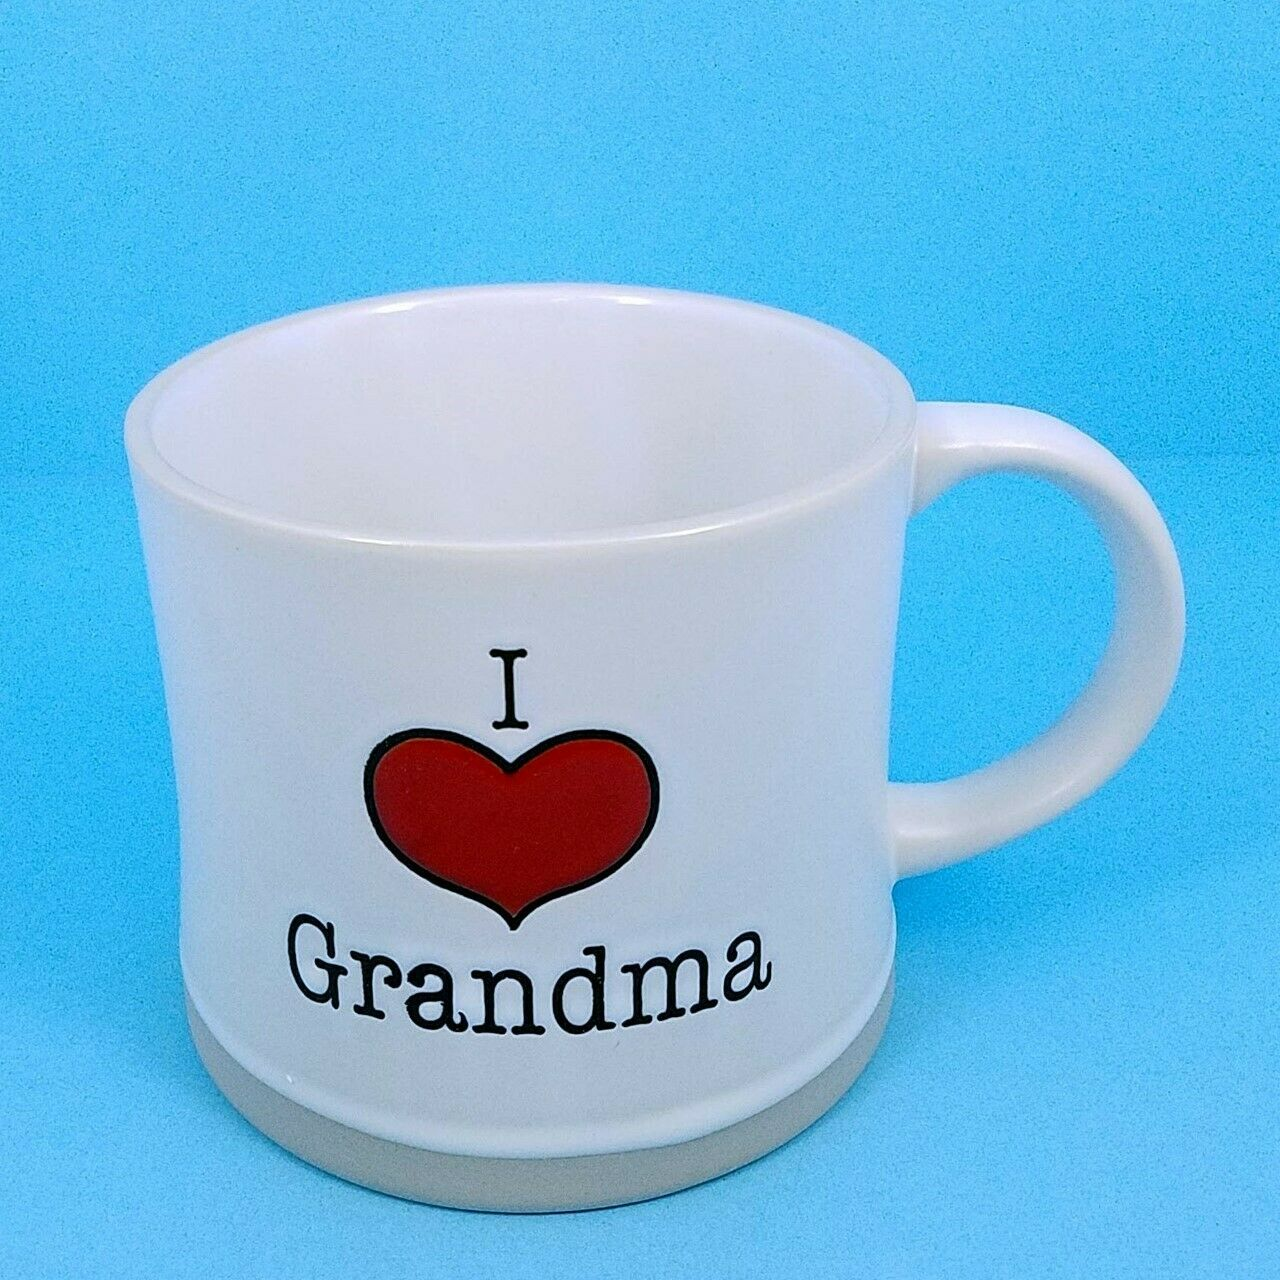 Coffee Mug Cup I Heart Grandma Beverage Ceramic 17 oz Spectrum Pen Pencil Holder